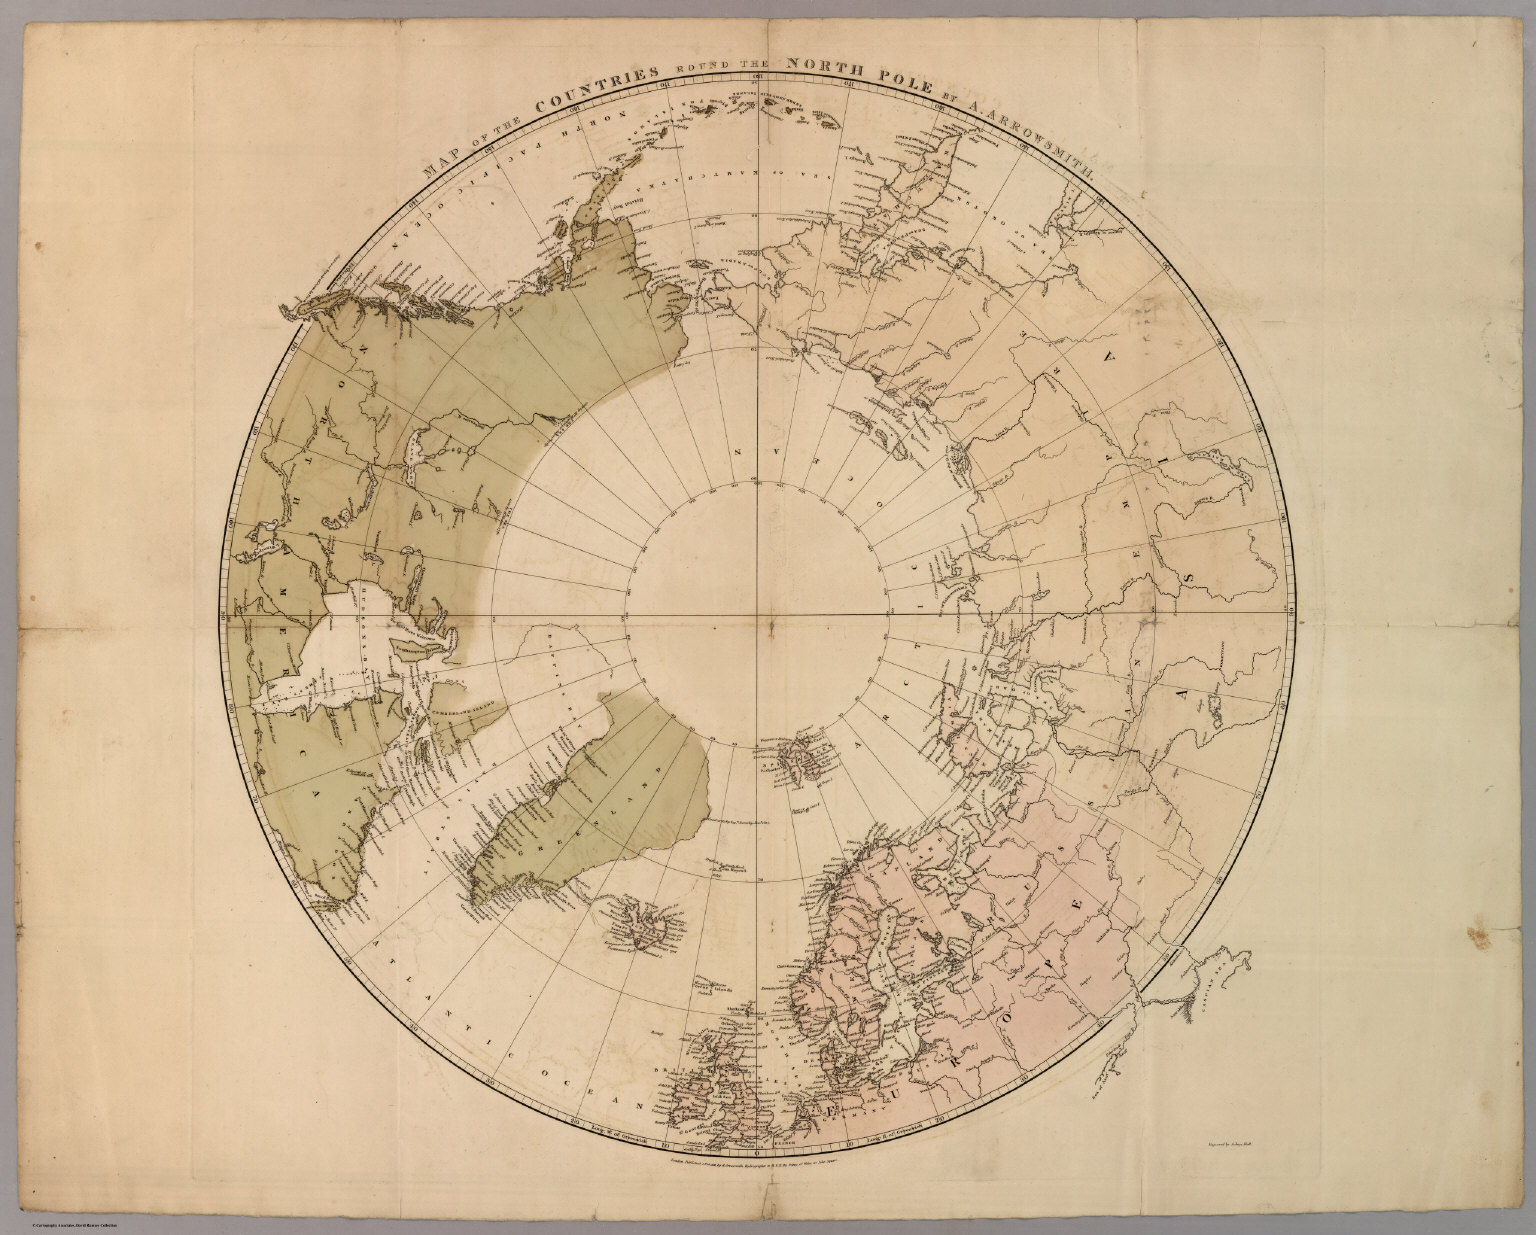 Map of the Countries Round the North Pole  David Rumsey